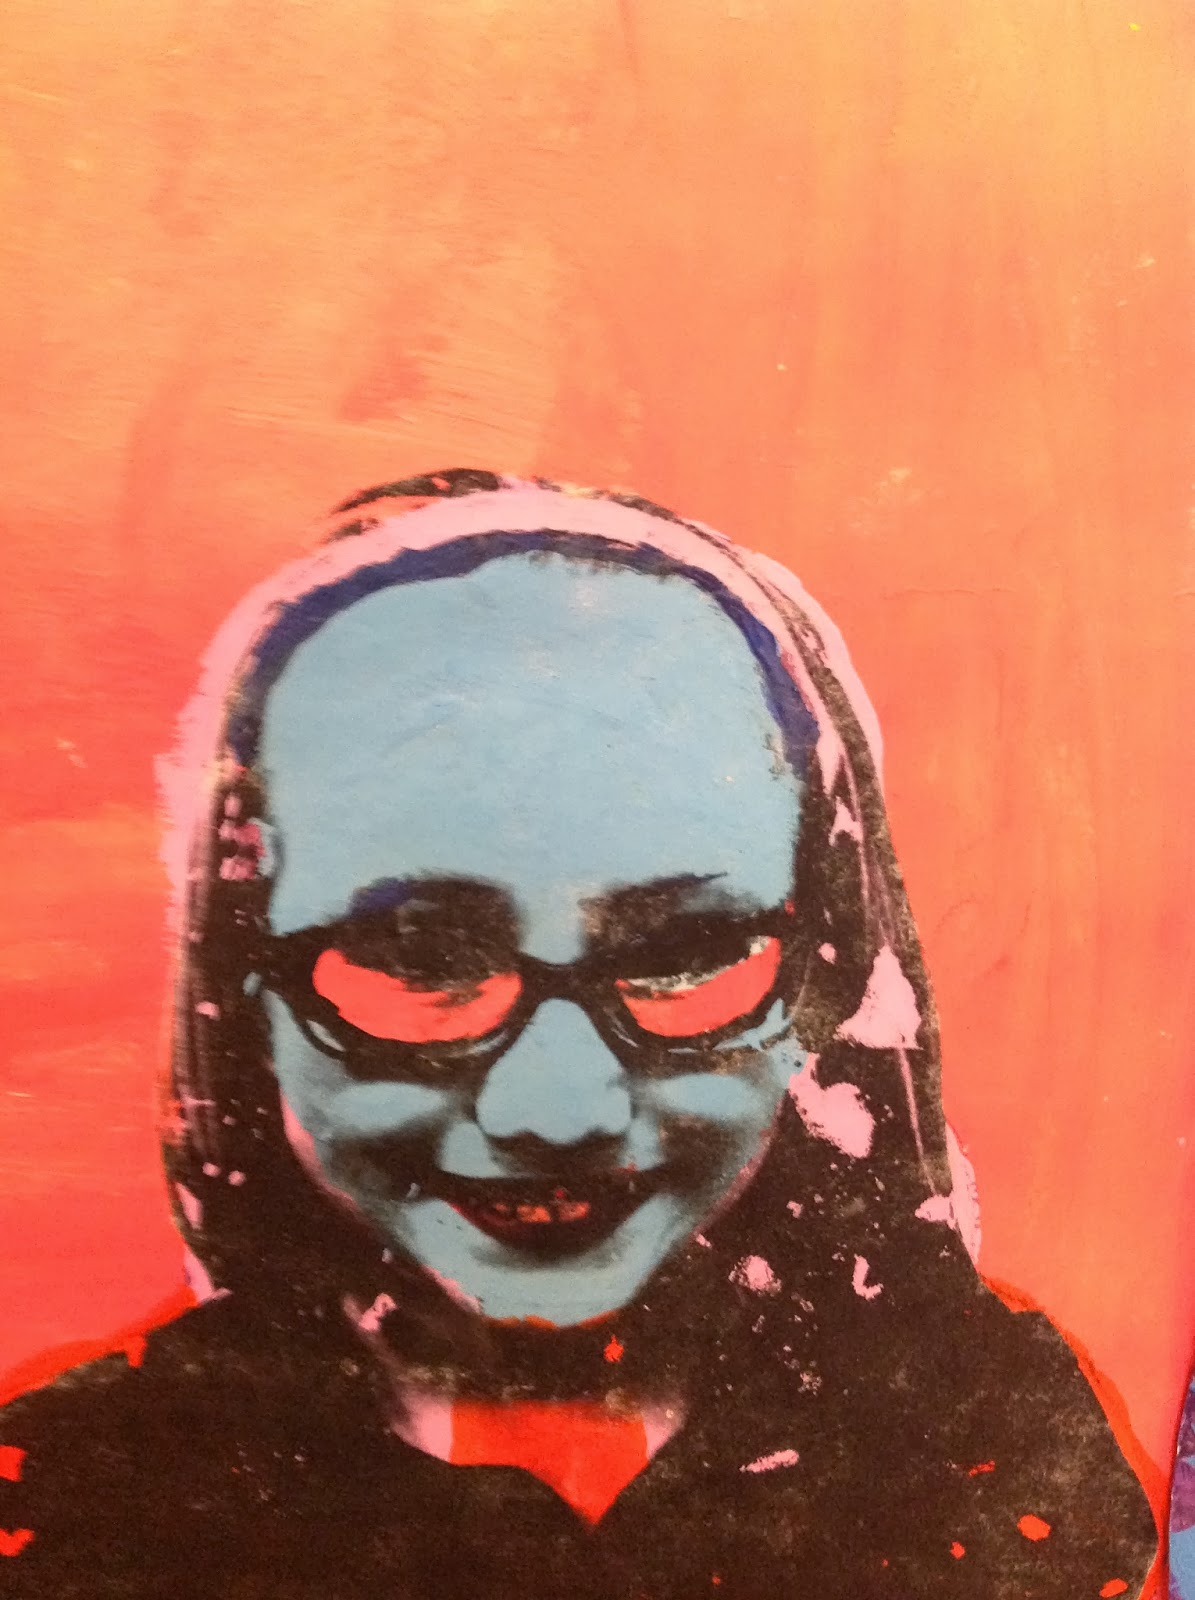 6th Grade Pop Art Portrait Inspired by Andy Warhol